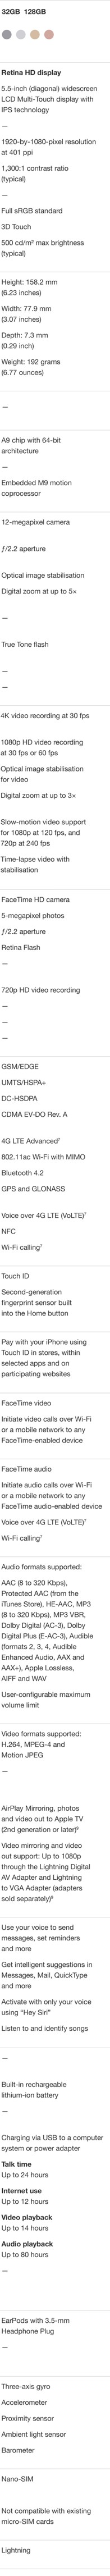 iPhone 6s Plus Specifications